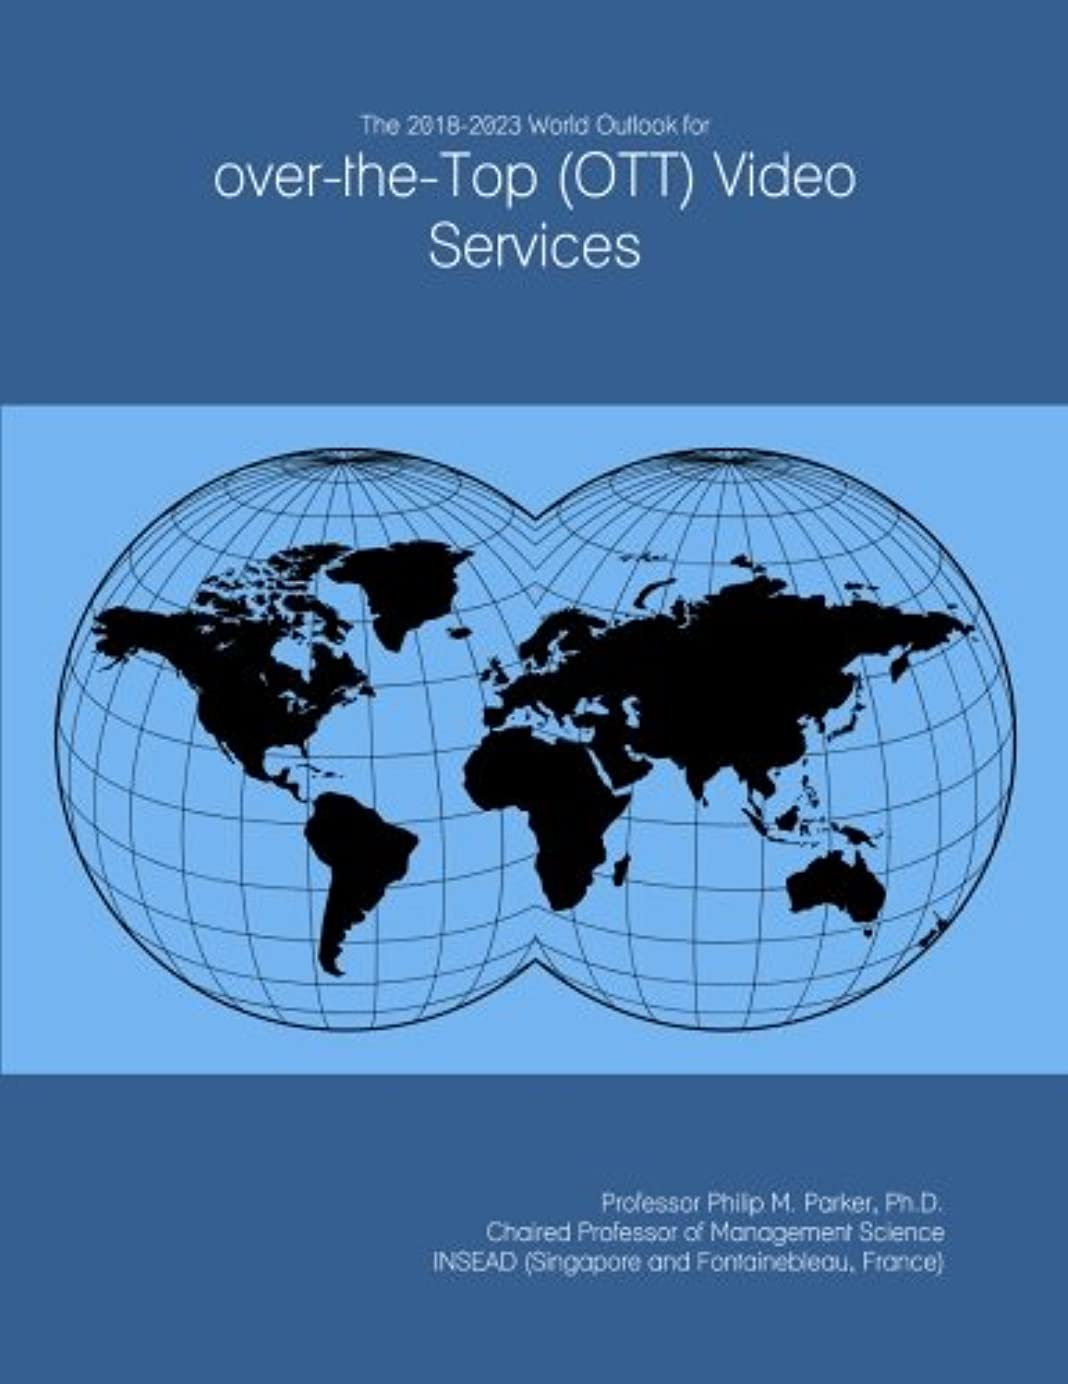 The 2018-2023 World Outlook for over-the-Top (OTT) Video Services